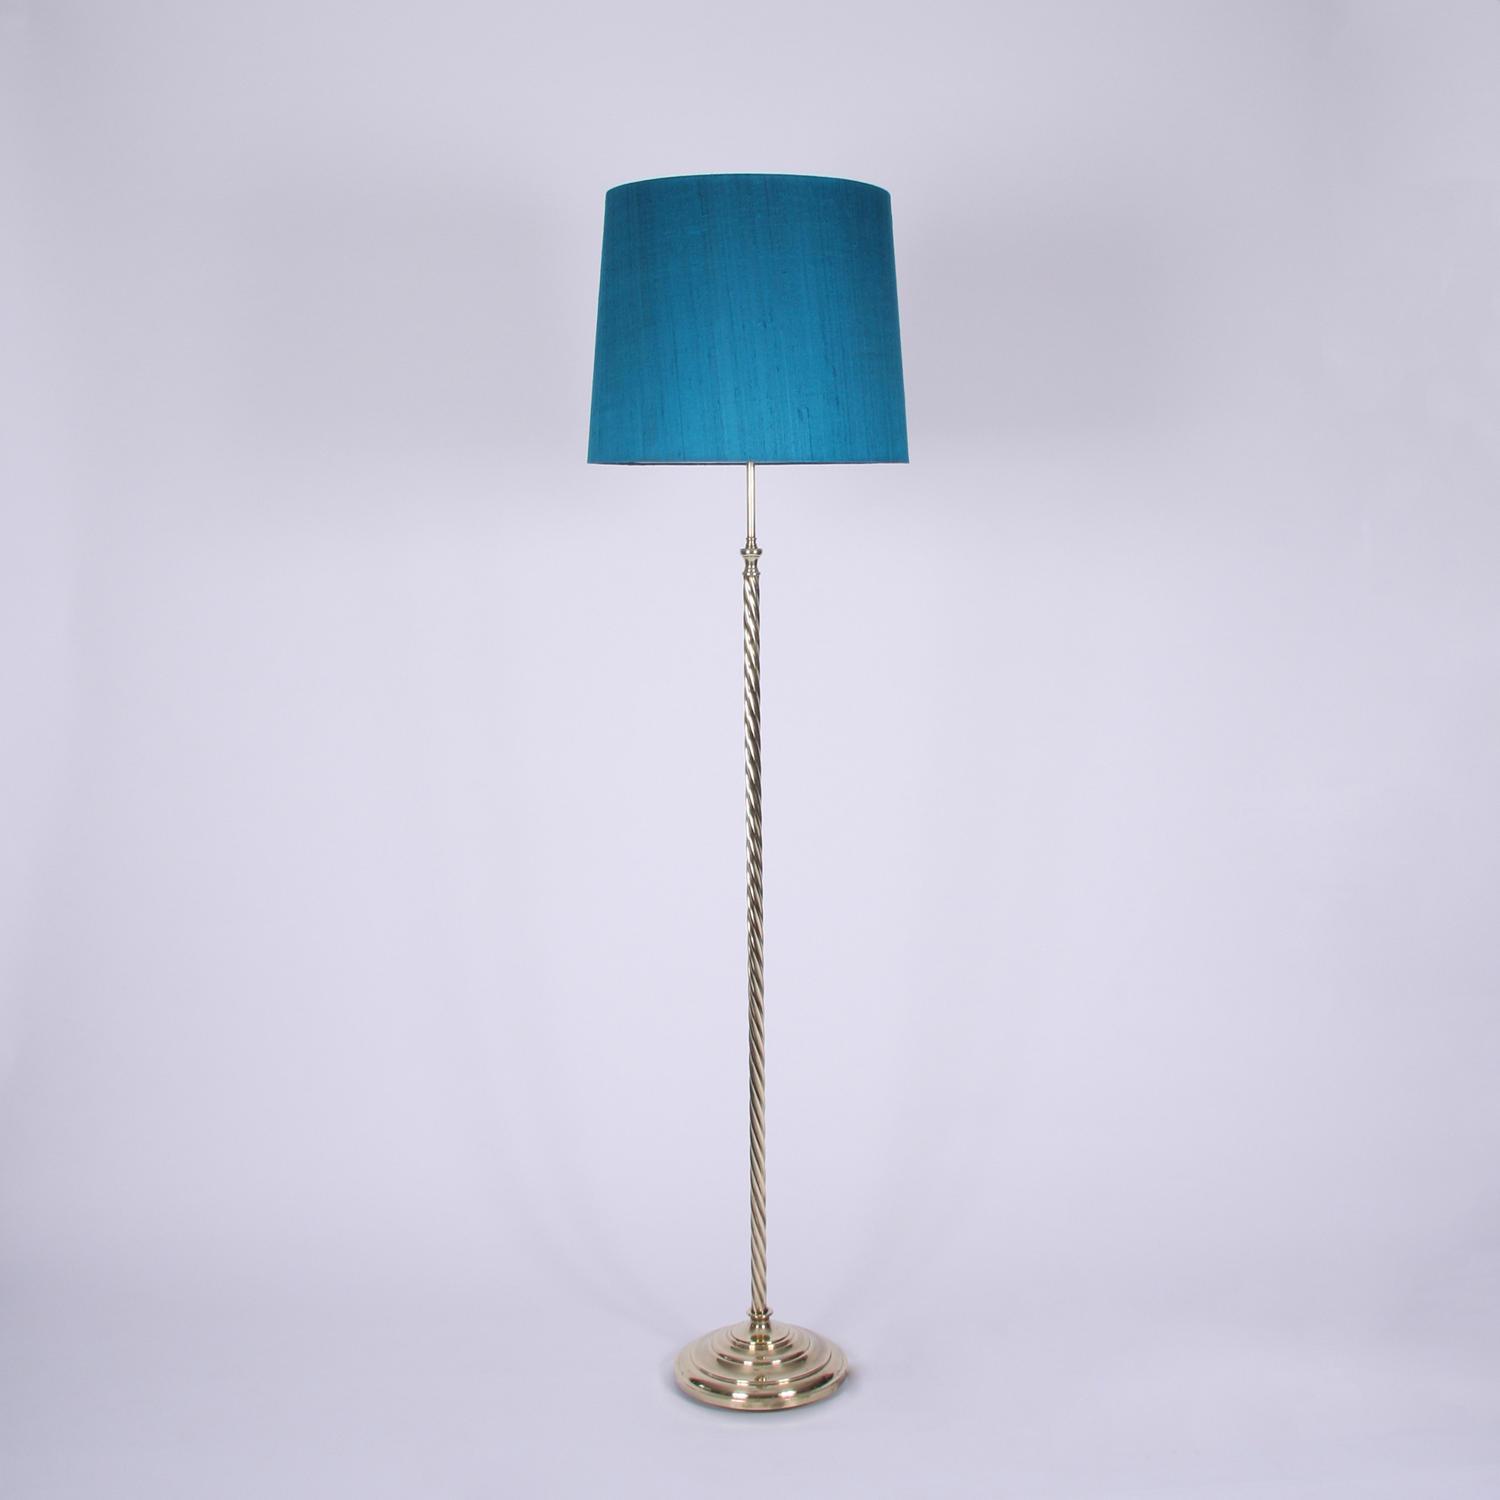 'Rope Twist' Brass Floor Lamp